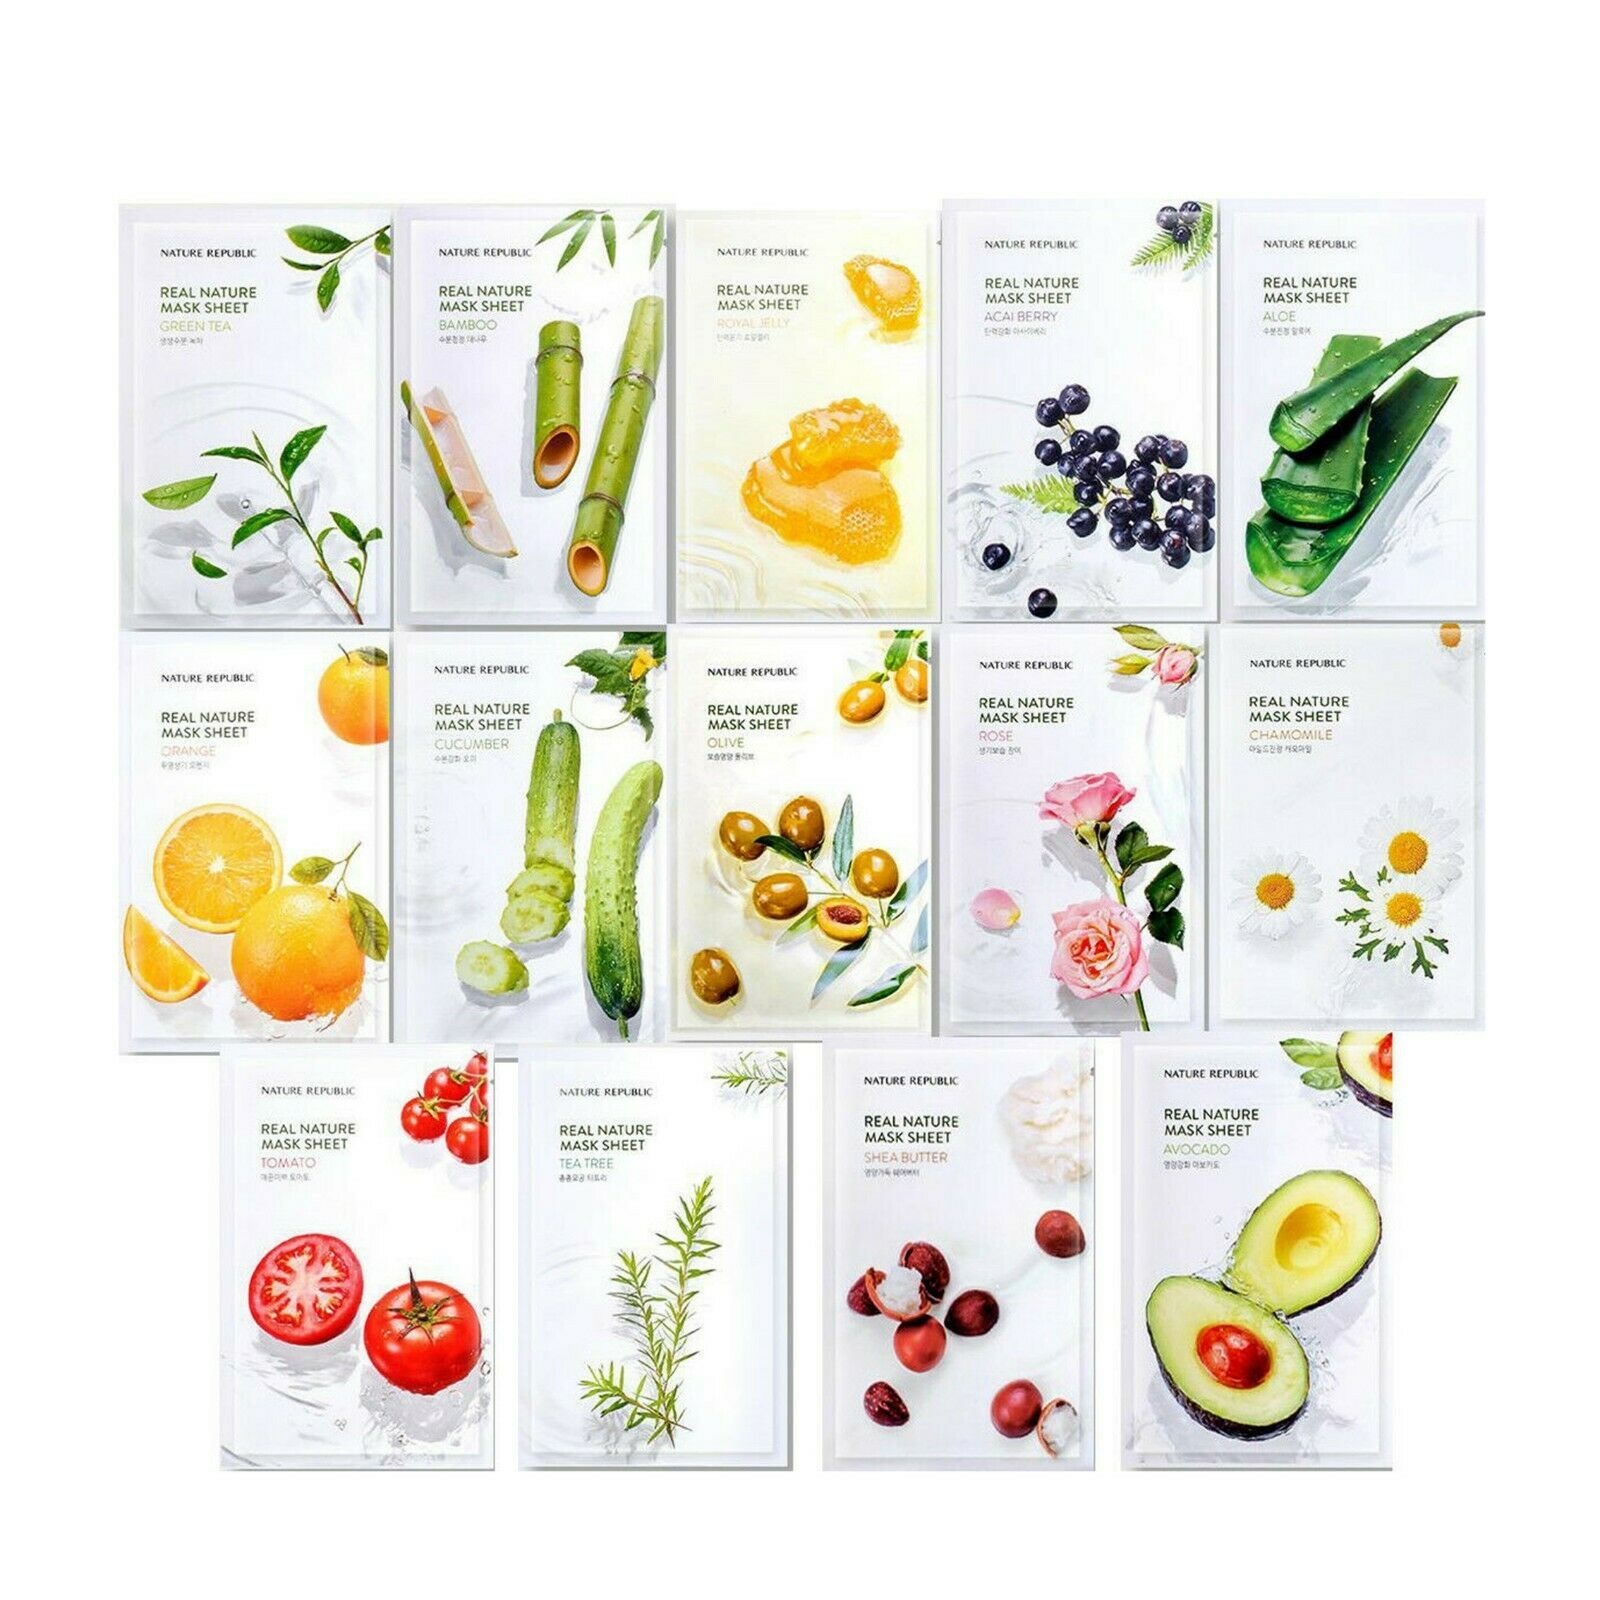 Nature Republic Real Nature Mask Sheets 10pcs/lot Face Mask Moisturizing Oil Control Shrink Pores Skin Care Korea Cosmetics